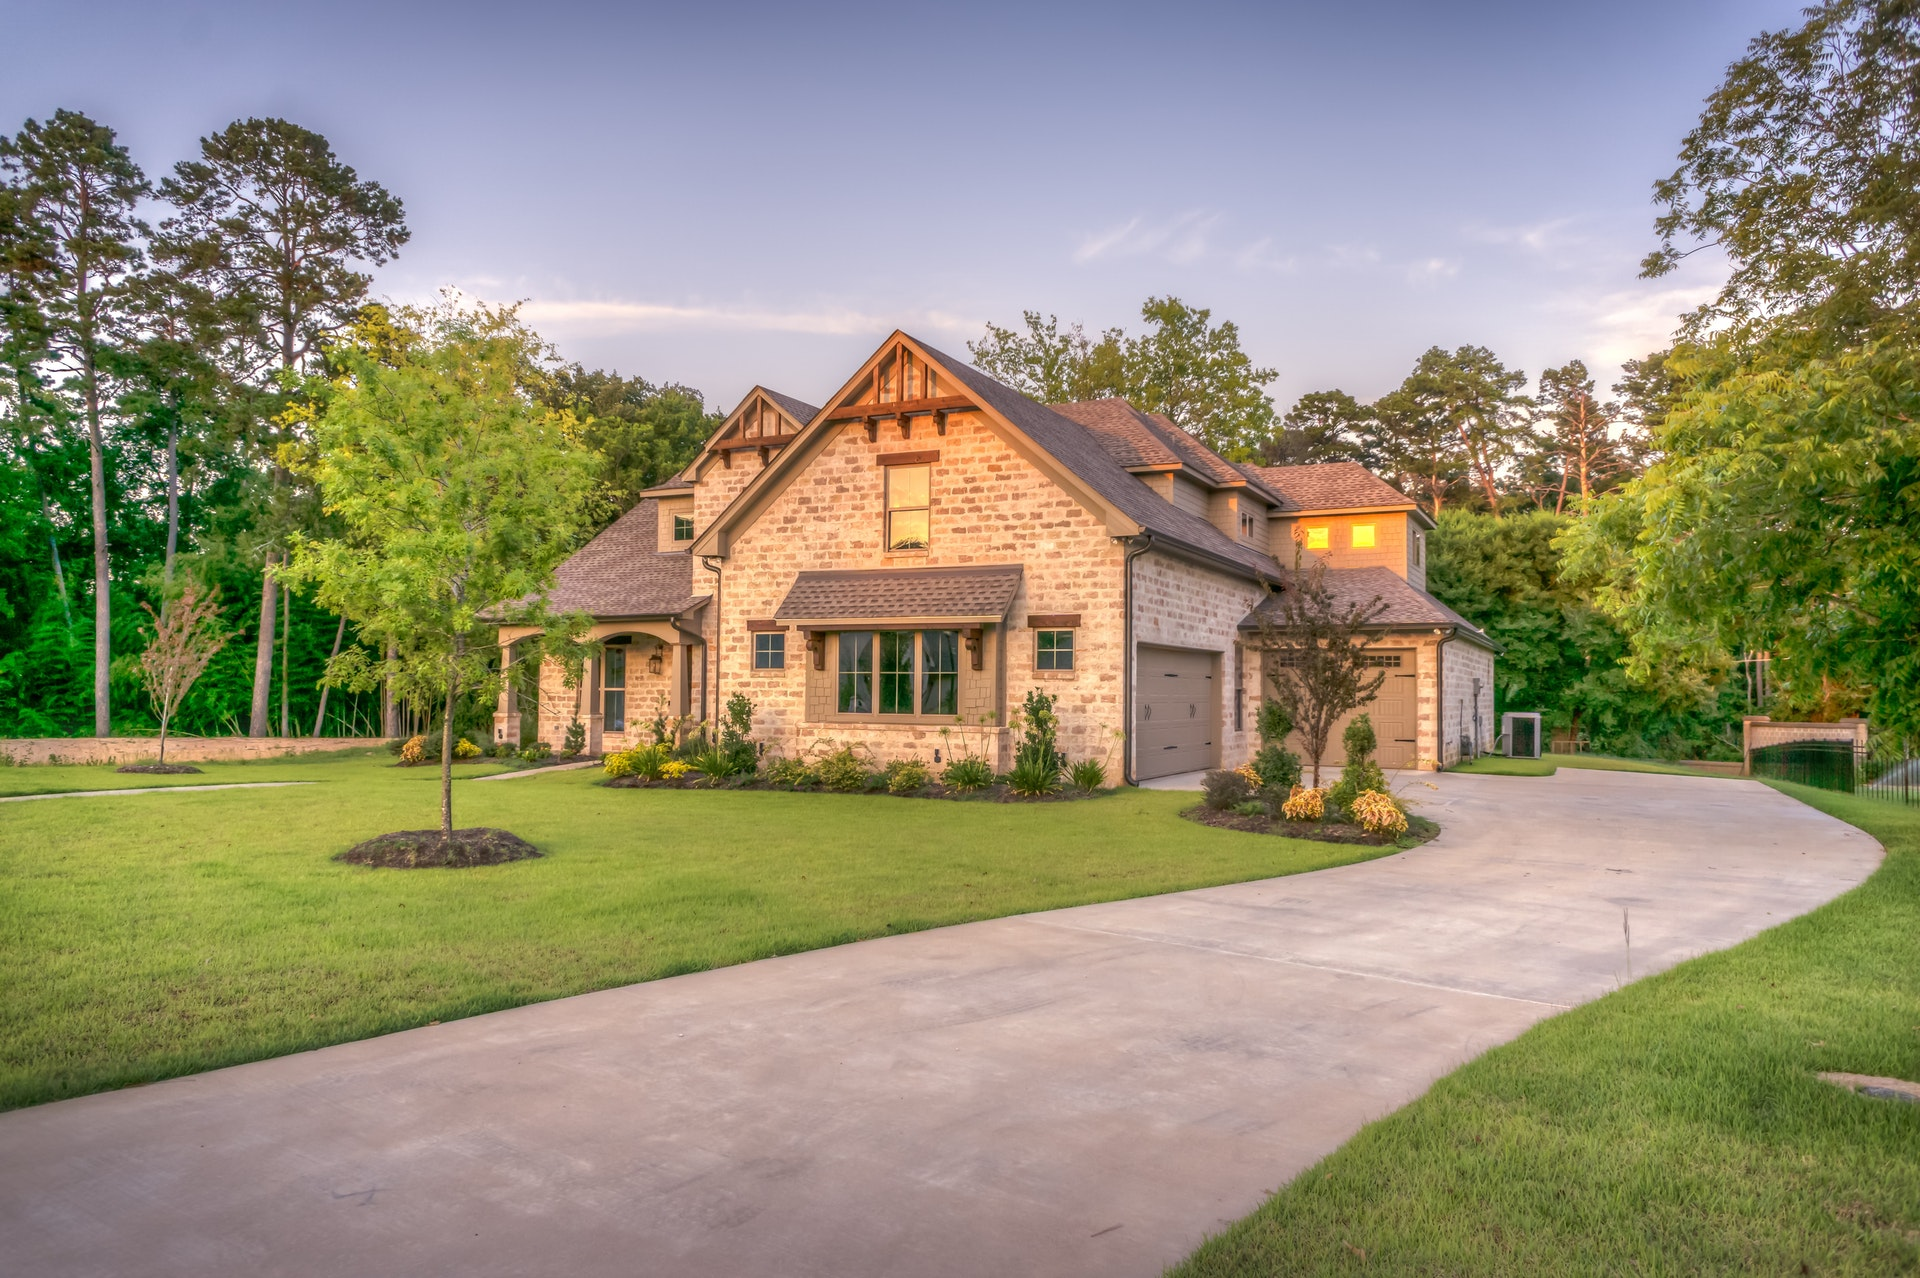 Prism Realty - Soak Up What Cedar Park's Buttercup Creek Community Has to Offer - Best Austin Real Estate Broker - Cedar Park Homes - Cedar Park Communities - Cedar Park Real estate